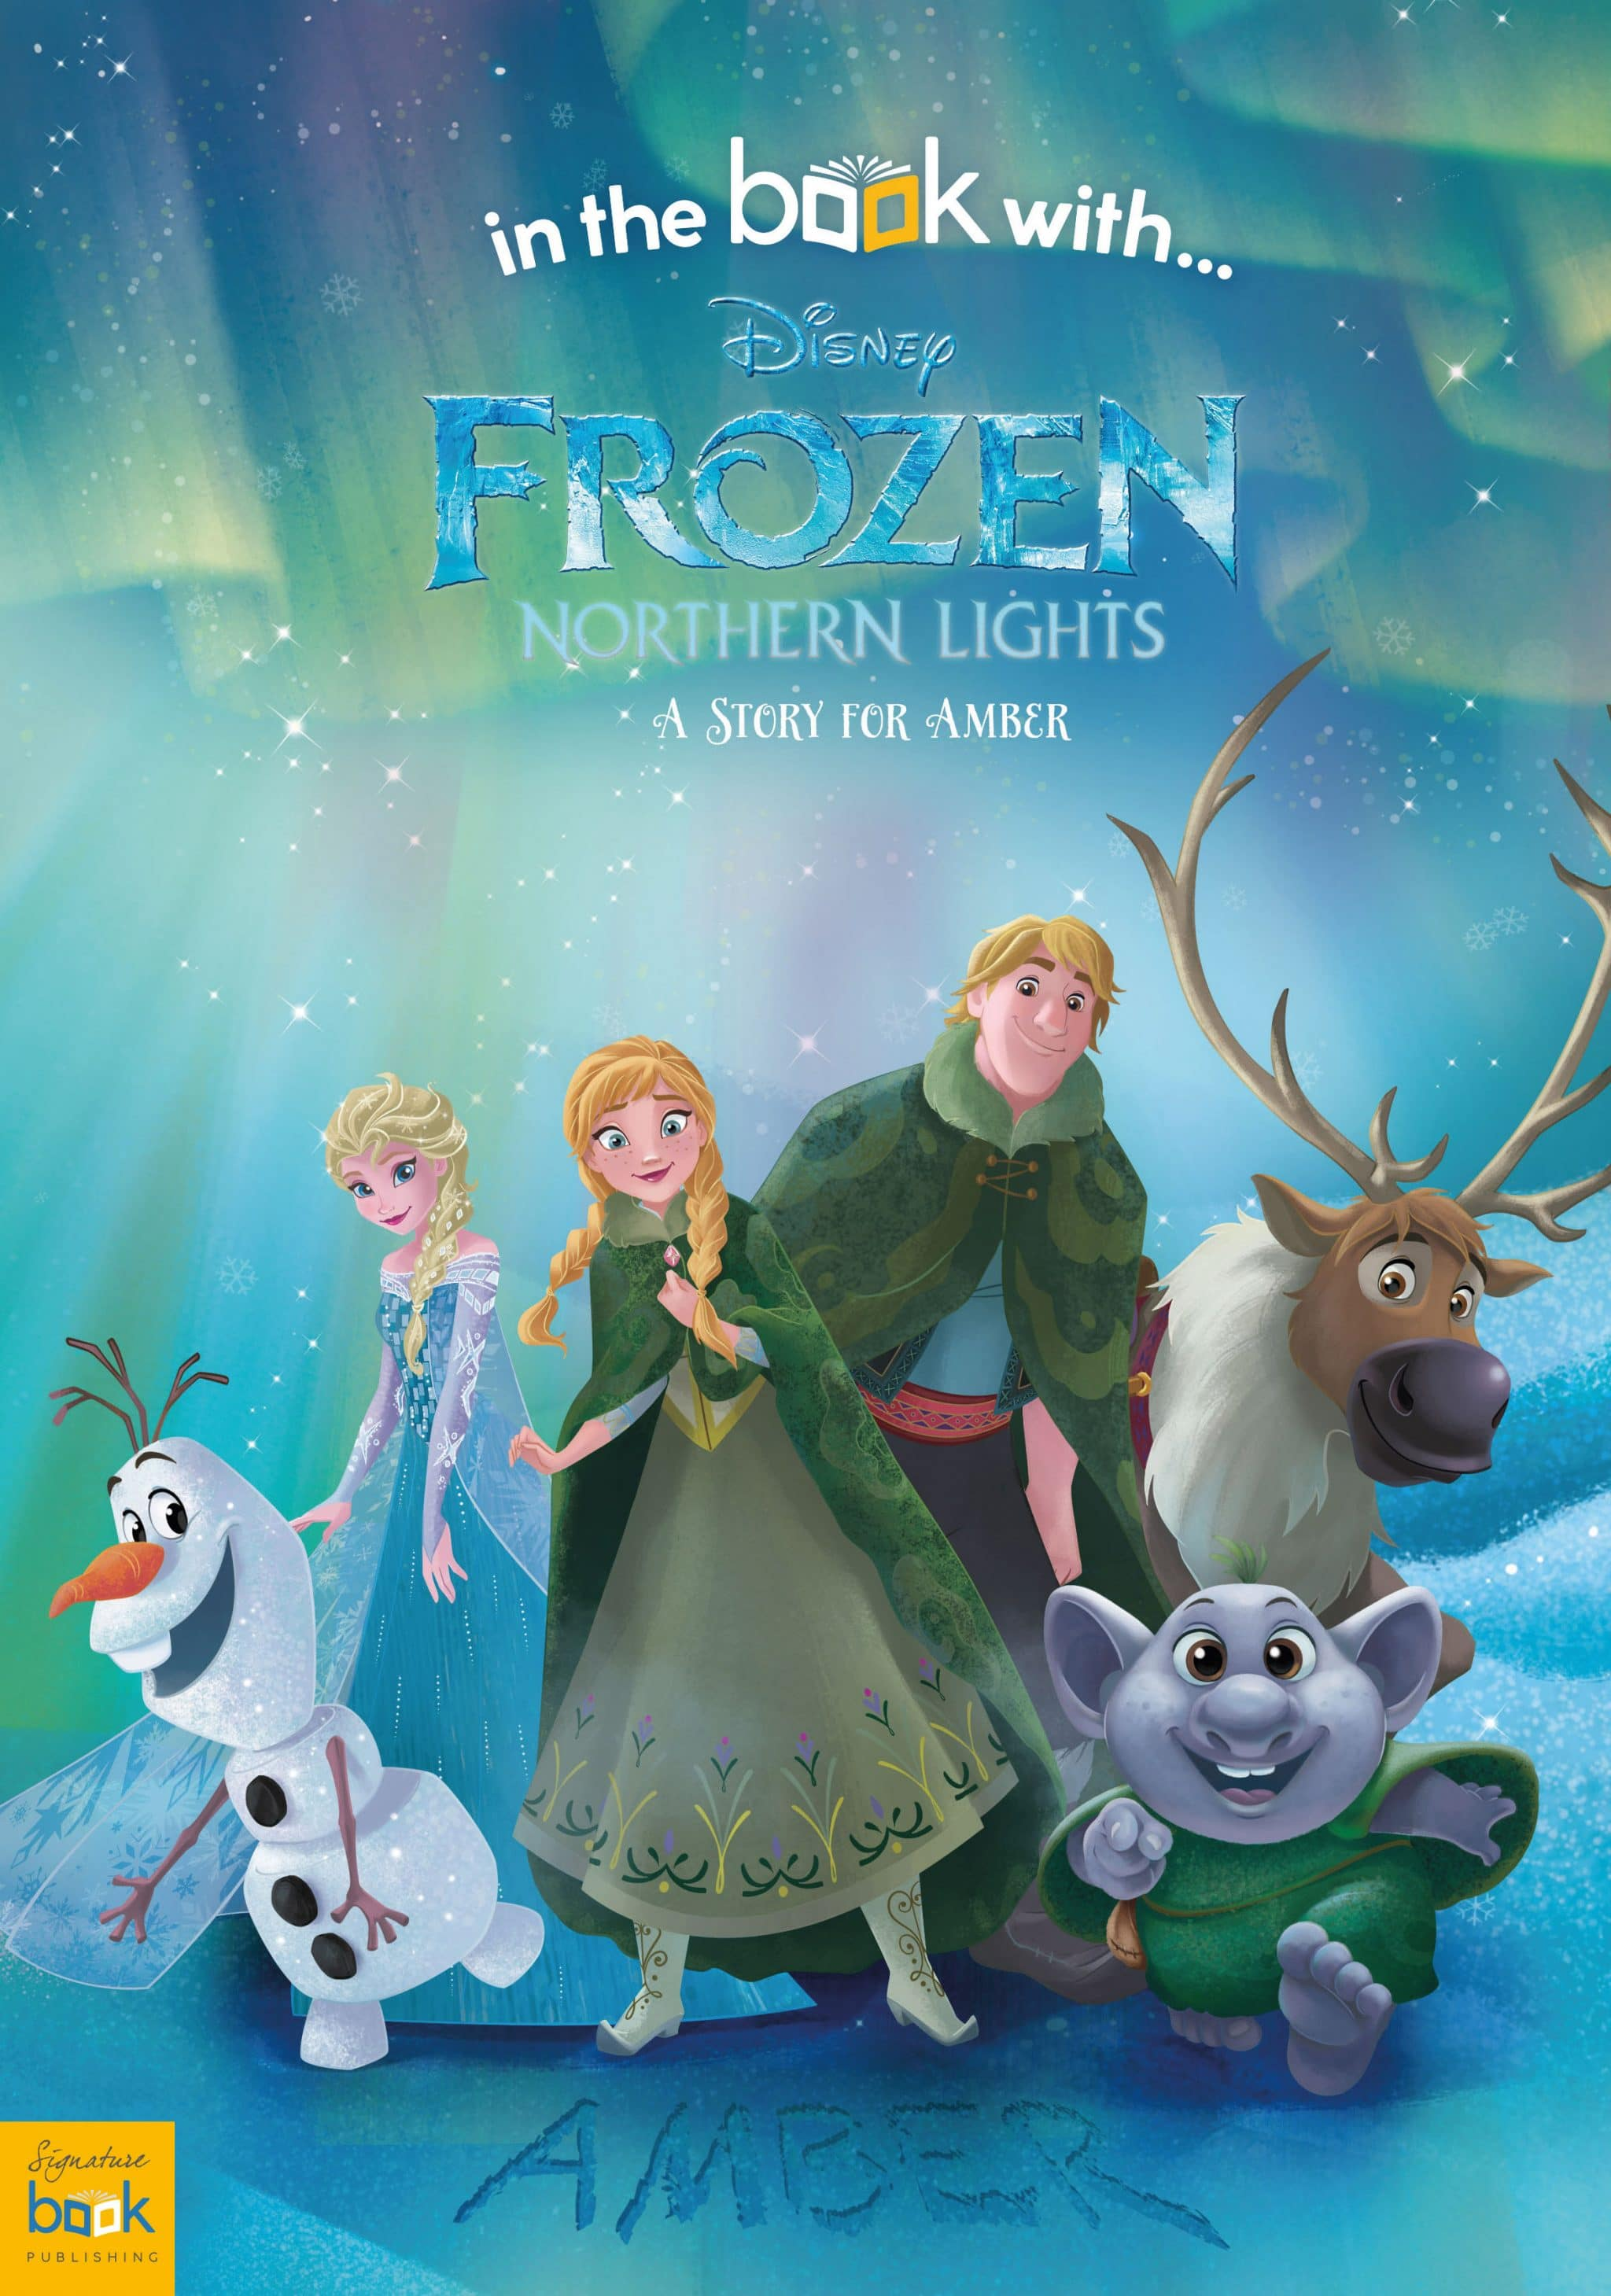 personalized disney frozen northern lights story book signature gifts